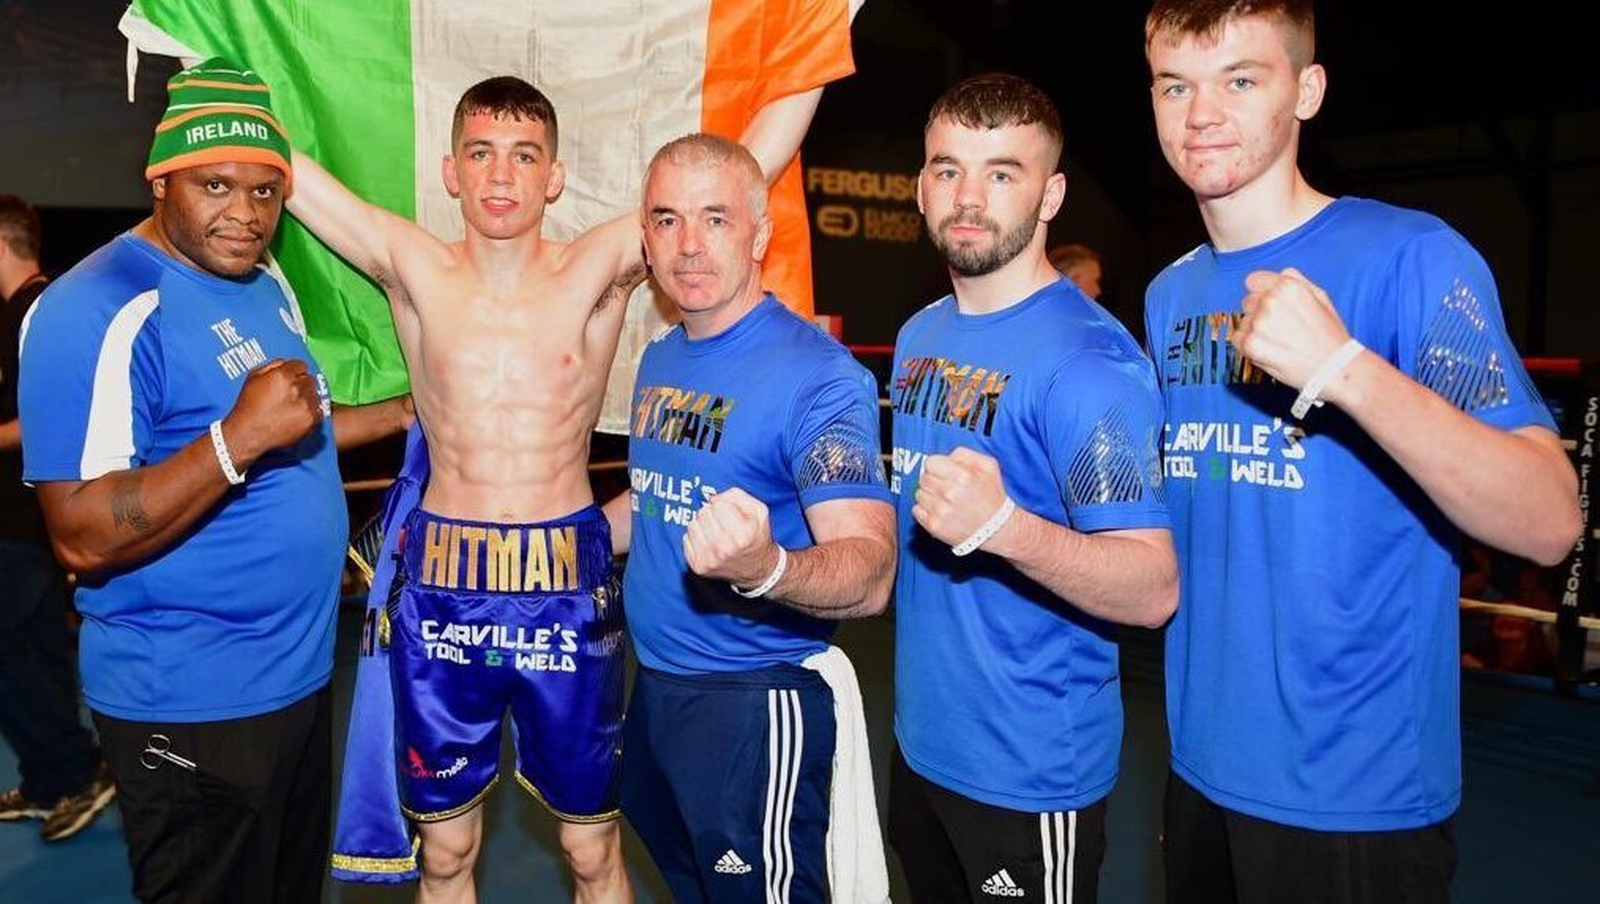 Hitman McKenna ready to rumble in Yorkshire bout